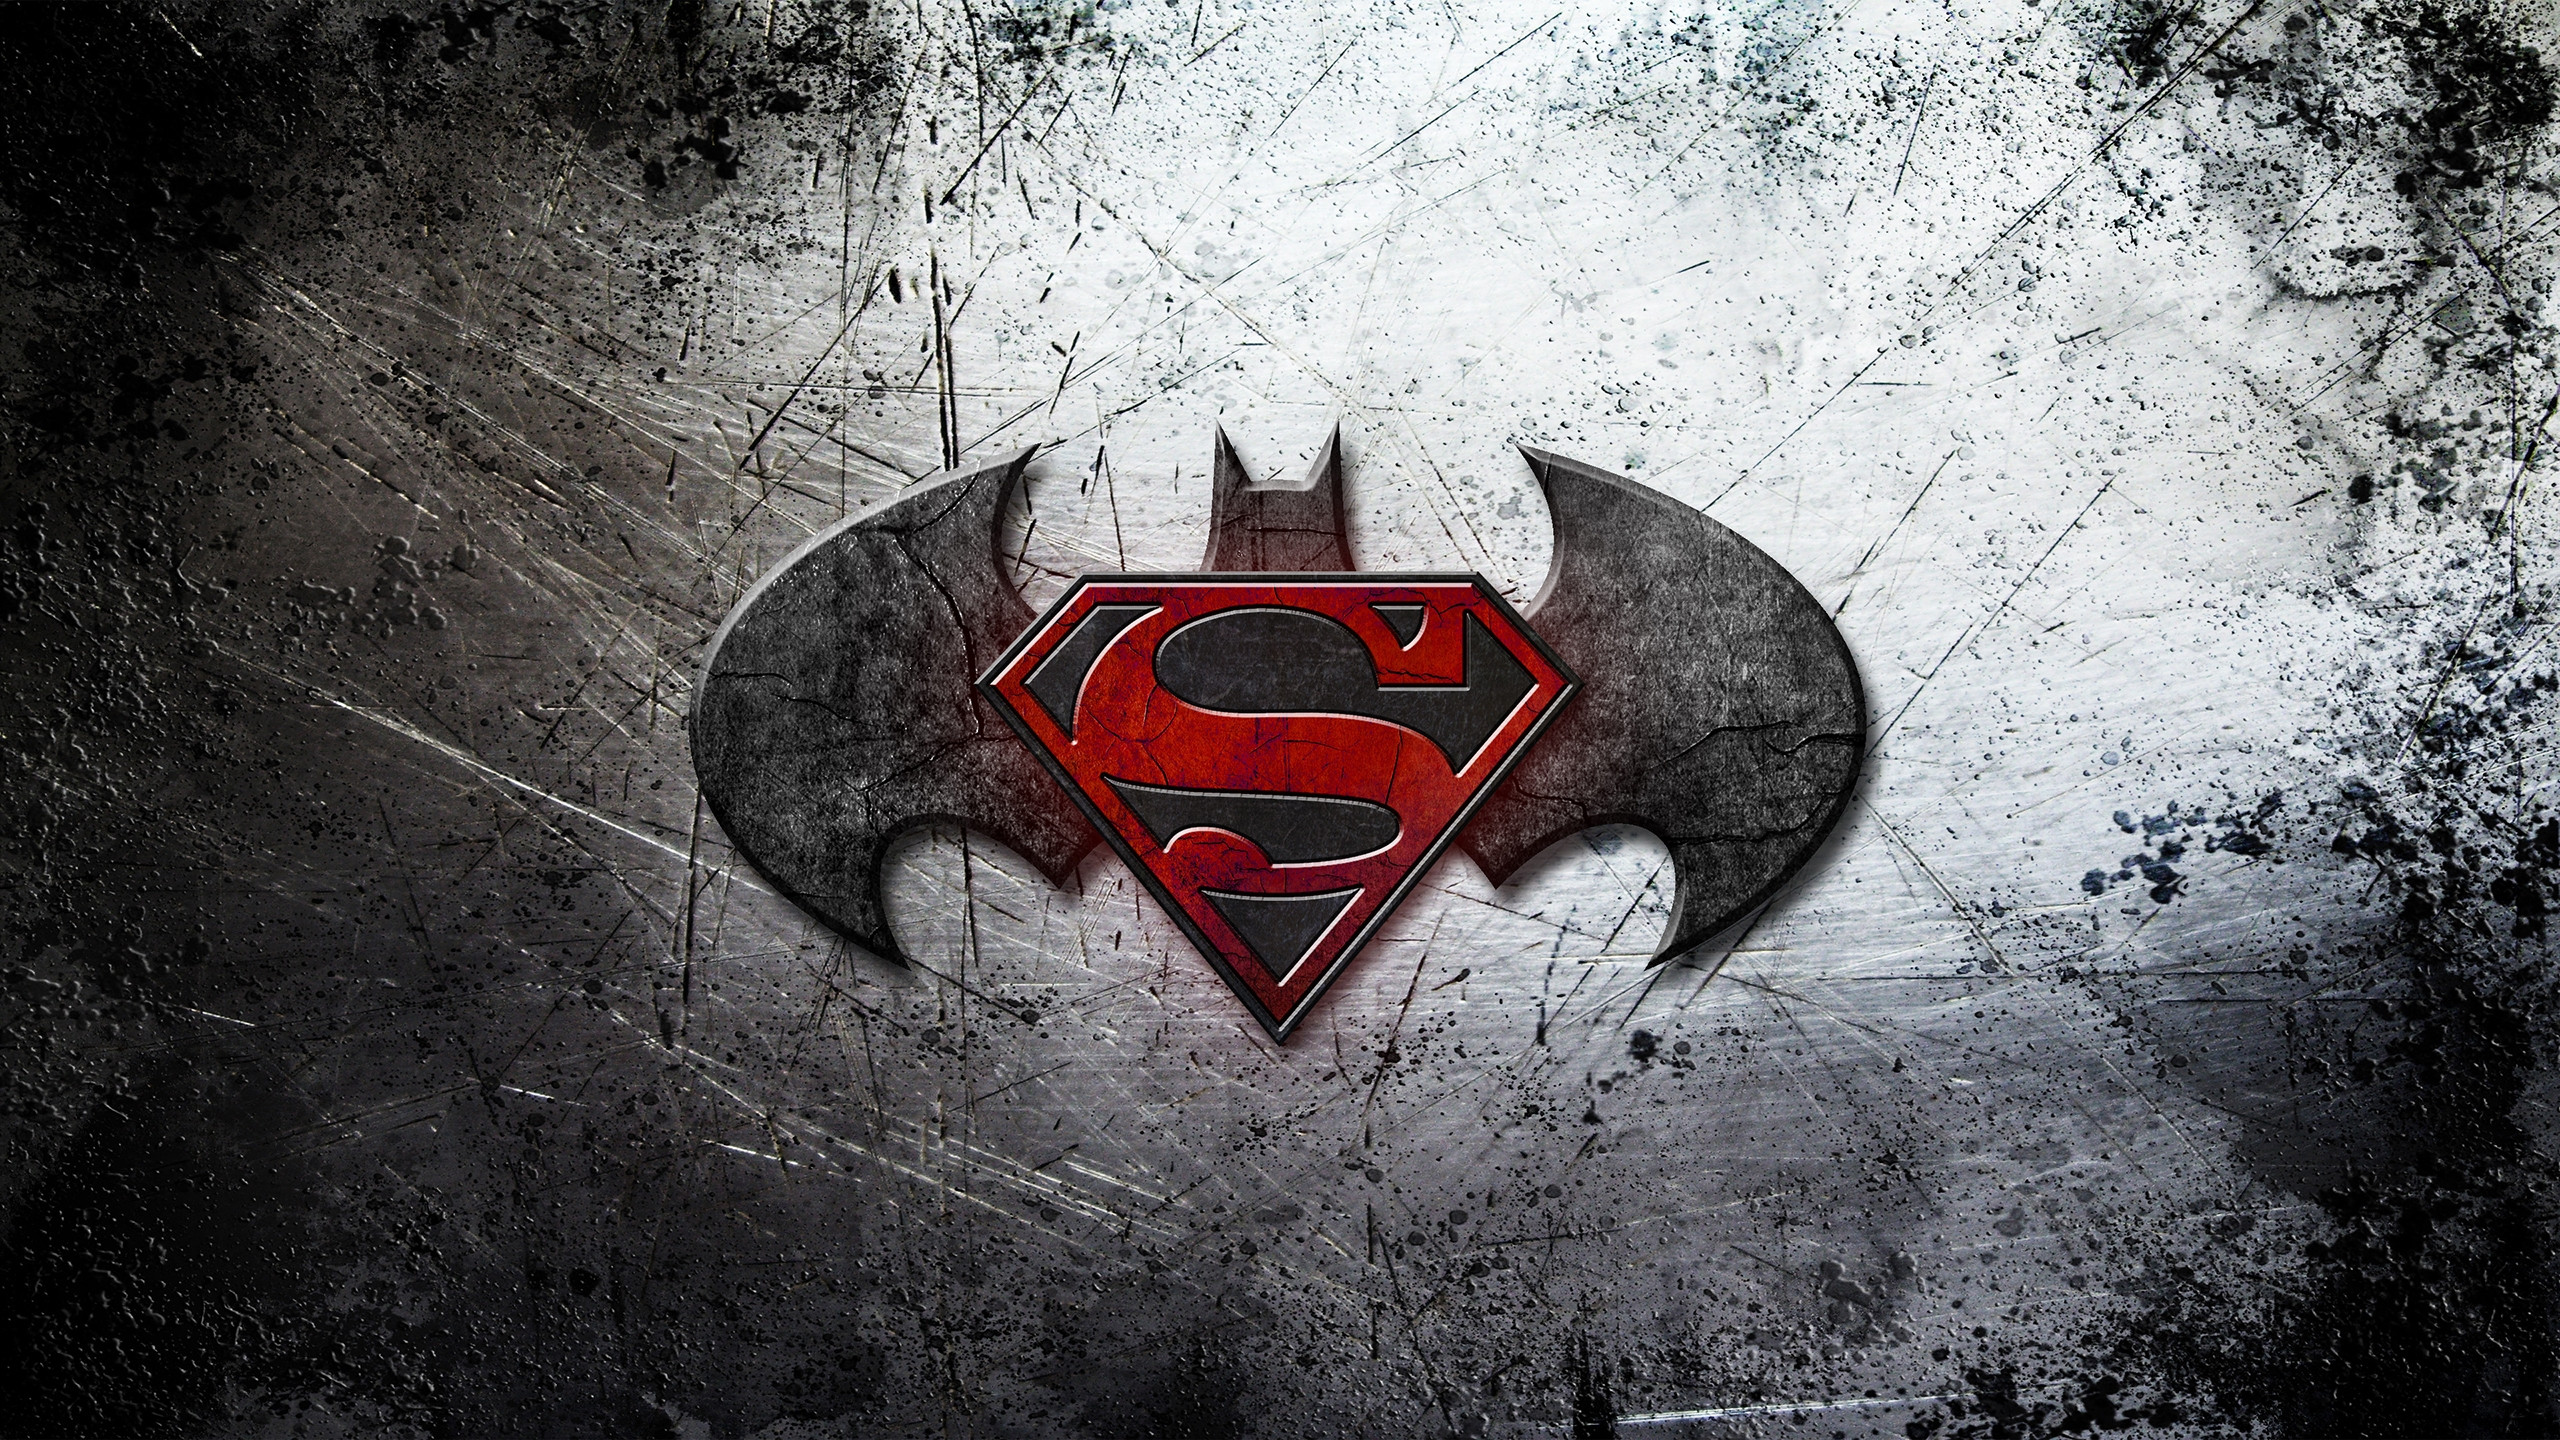 Batman vs Superman Logo Wallpaper in High Resolution at Movies 2560x1440